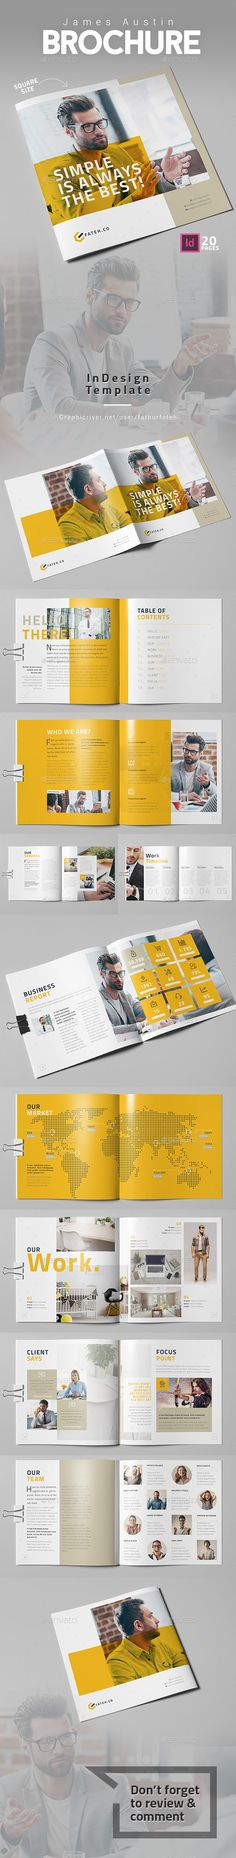 Julian Cooper Brochure  Square  — InDesign Template #print ready #agency • Download ➝ https://graphicriver.net/item/julian-cooper-brochure-square/18326758?ref=pxcr